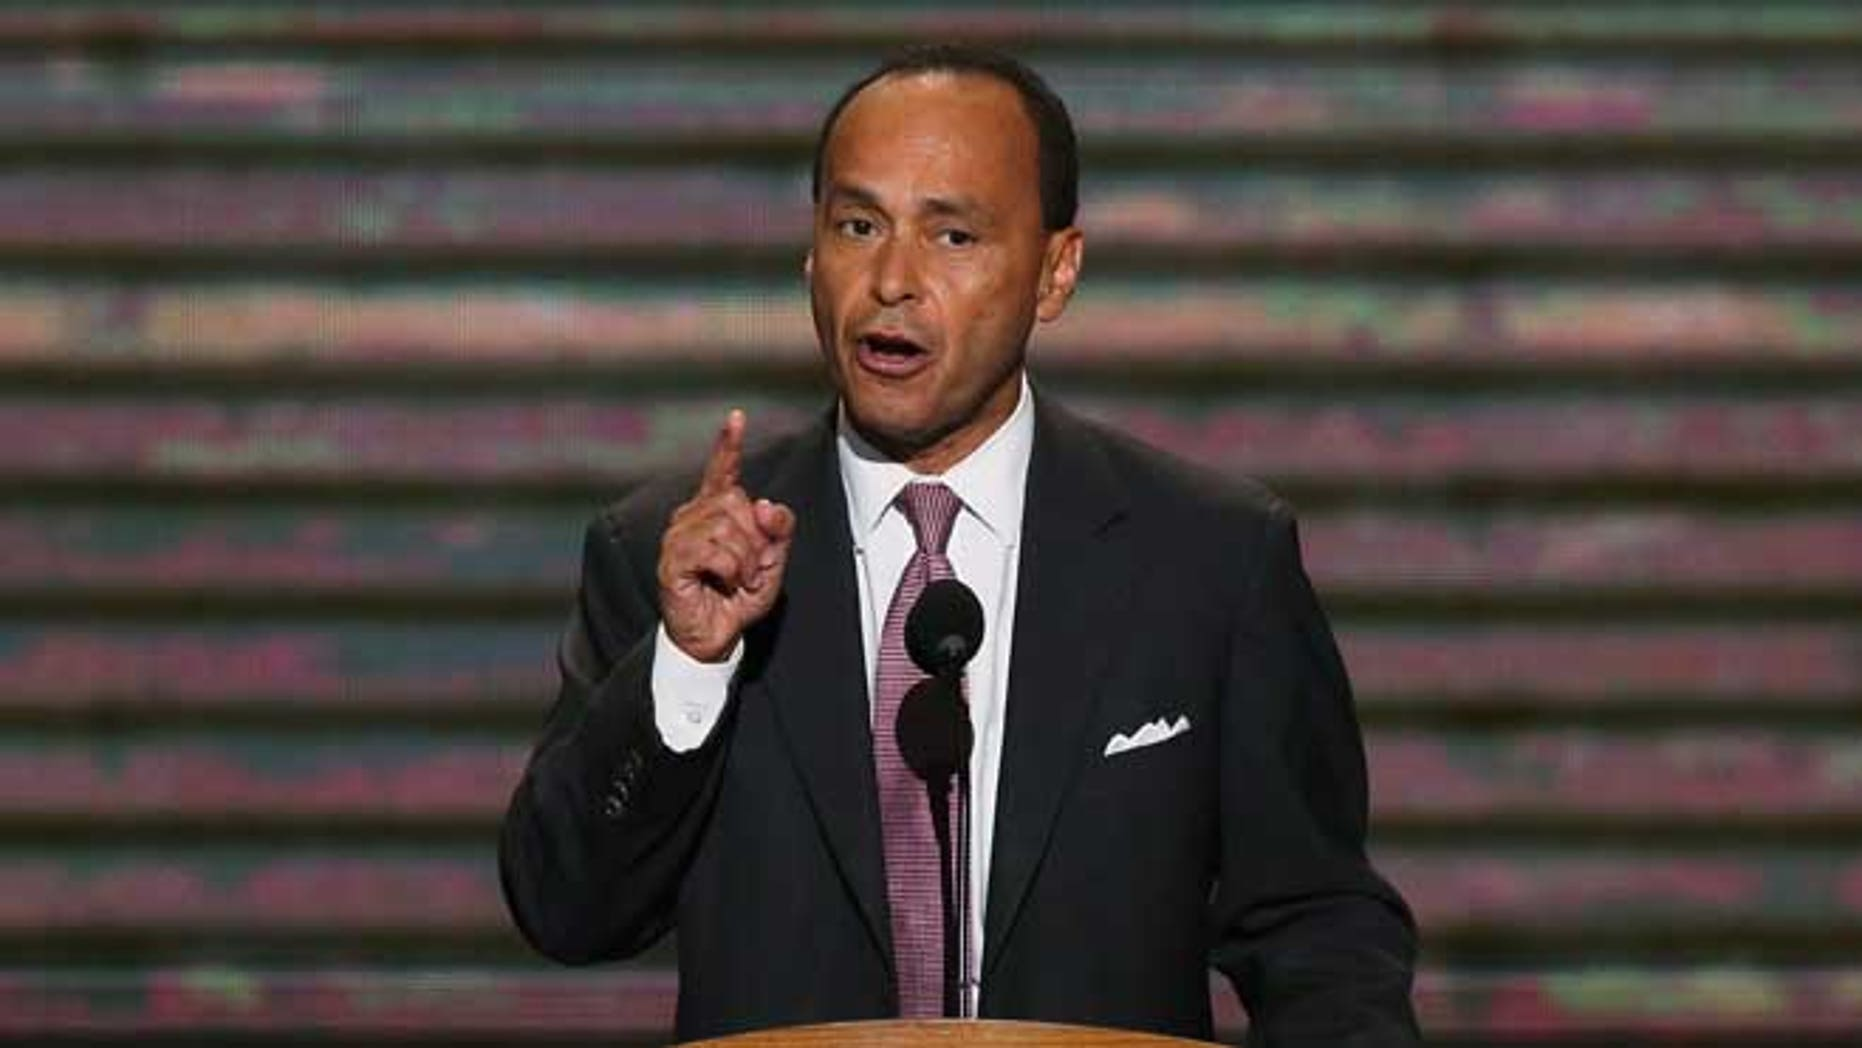 CHARLOTTE, NC - SEPTEMBER 05:  U.S. Rep. Luis V. Gutierrez (D-IL) speaks during day two of the Democratic National Convention at Time Warner Cable Arena on September 5, 2012 in Charlotte, North Carolina. The DNC that will run through September 7, will nominate U.S. President Barack Obama as the Democratic presidential candidate.  (Photo by Alex Wong/Getty Images)